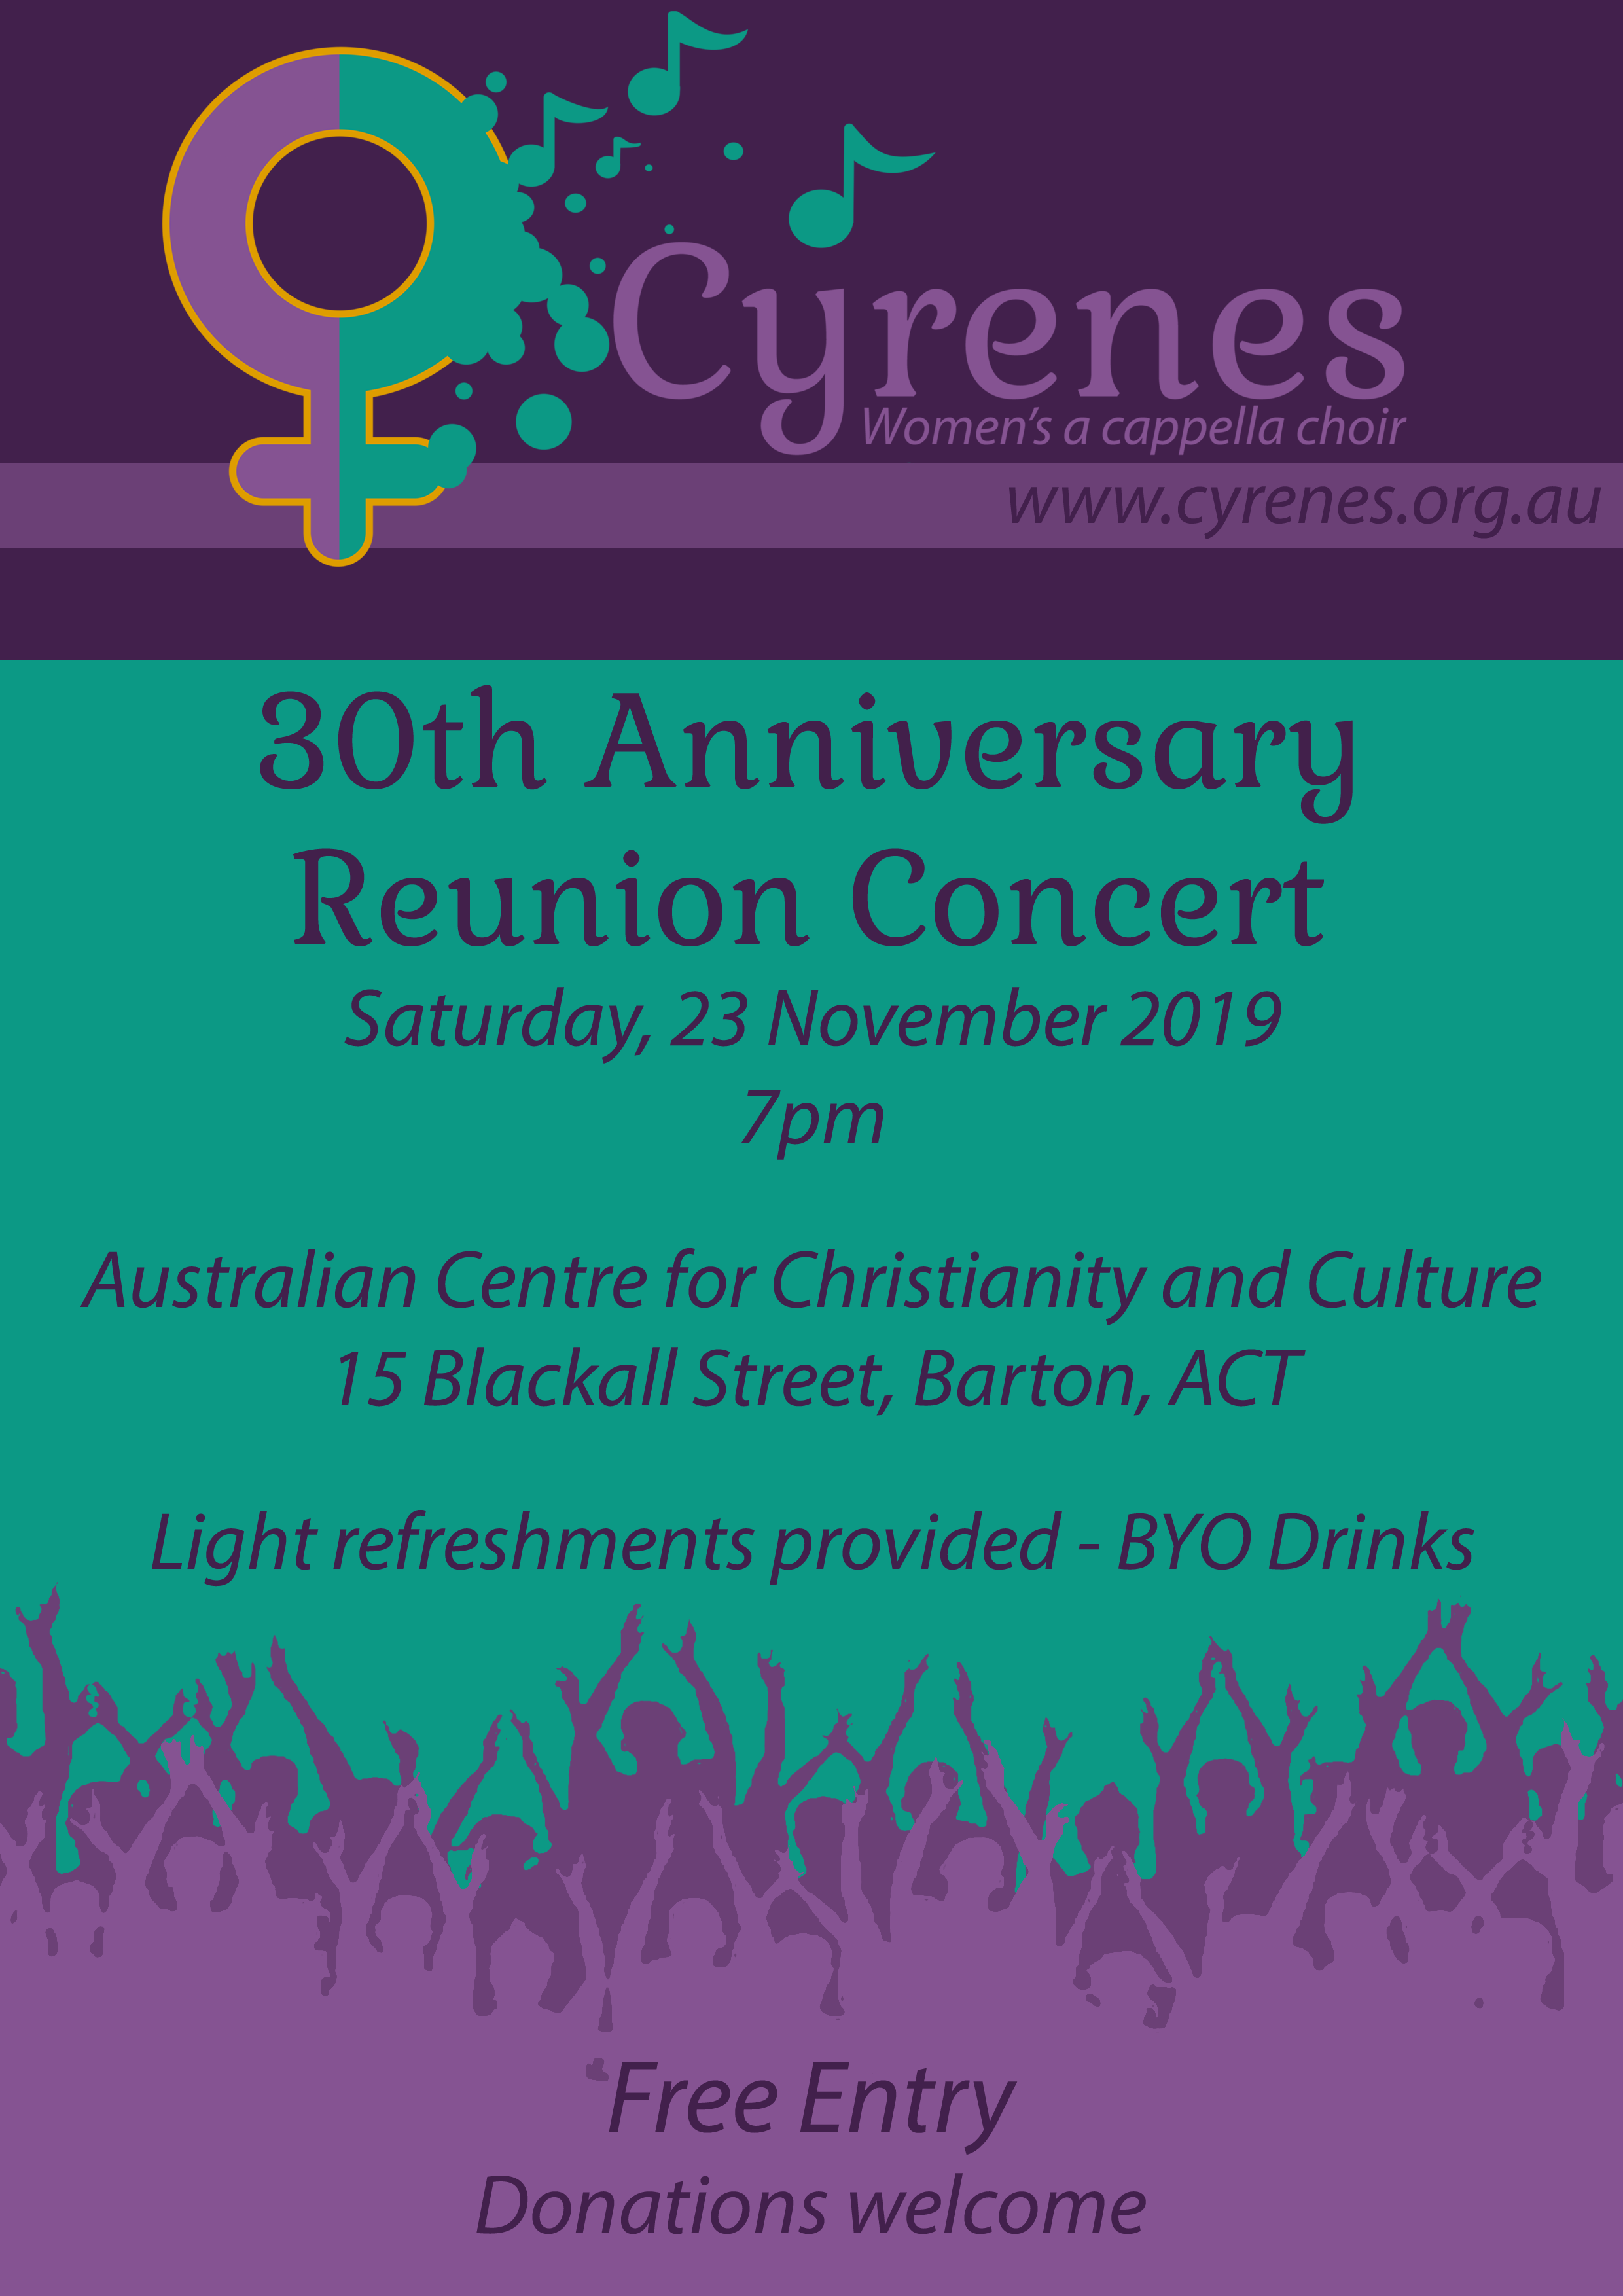 Cyrenes 30th anniversary concert